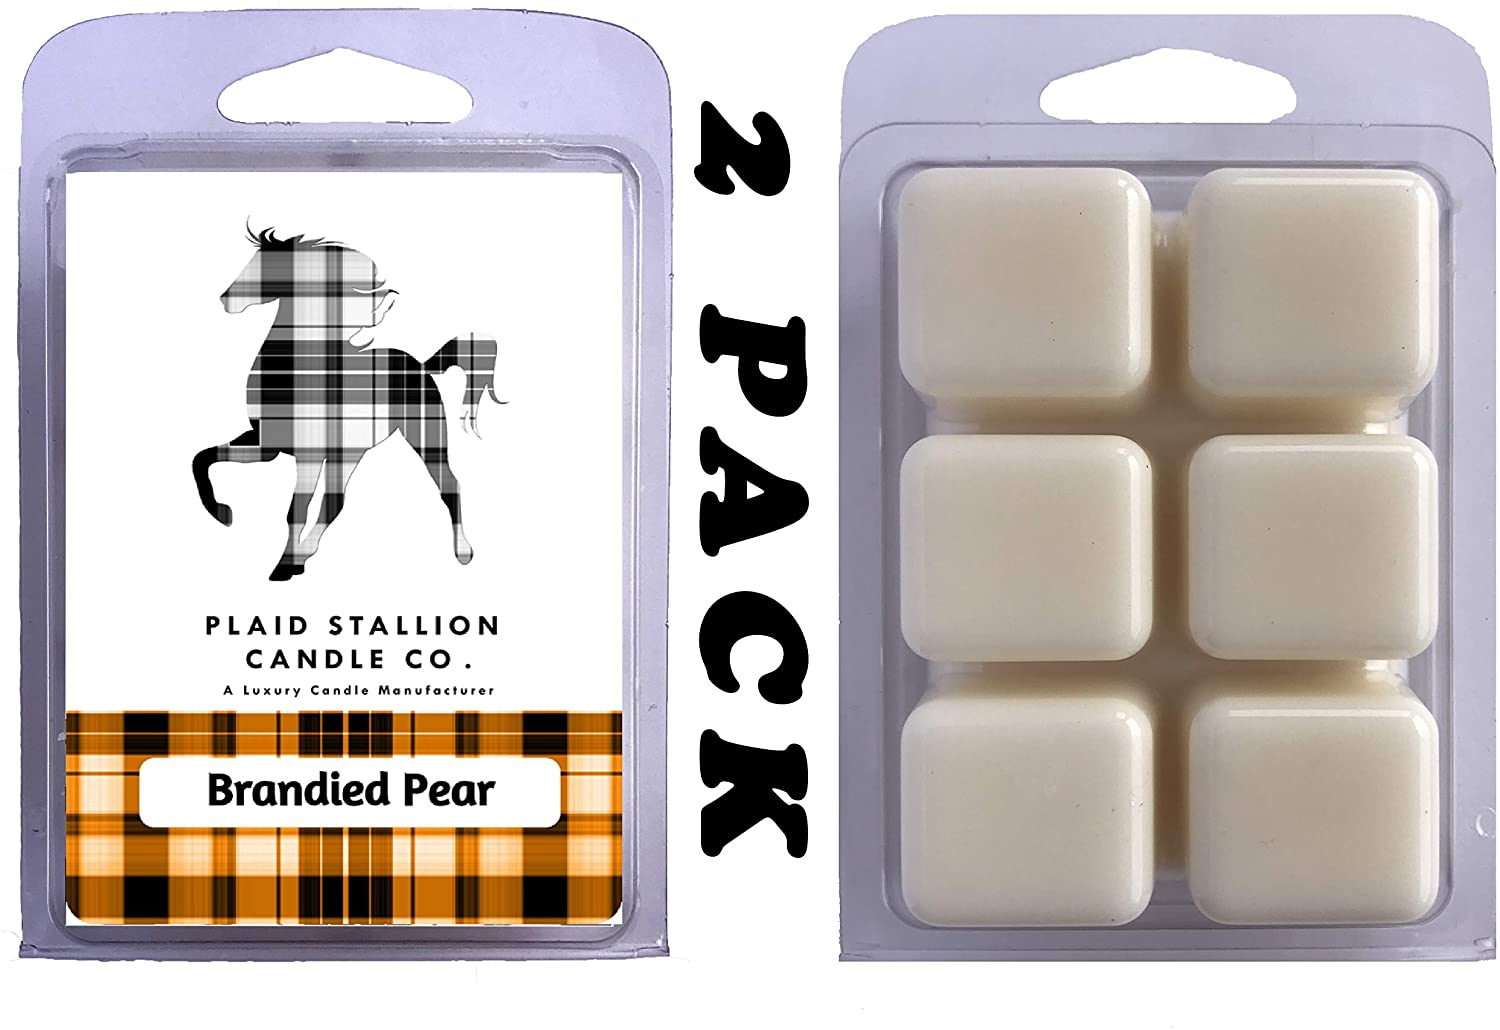 Brandied Pear - Long Lasting, Highly Scented Wax Melts, Many Scents to Choose from